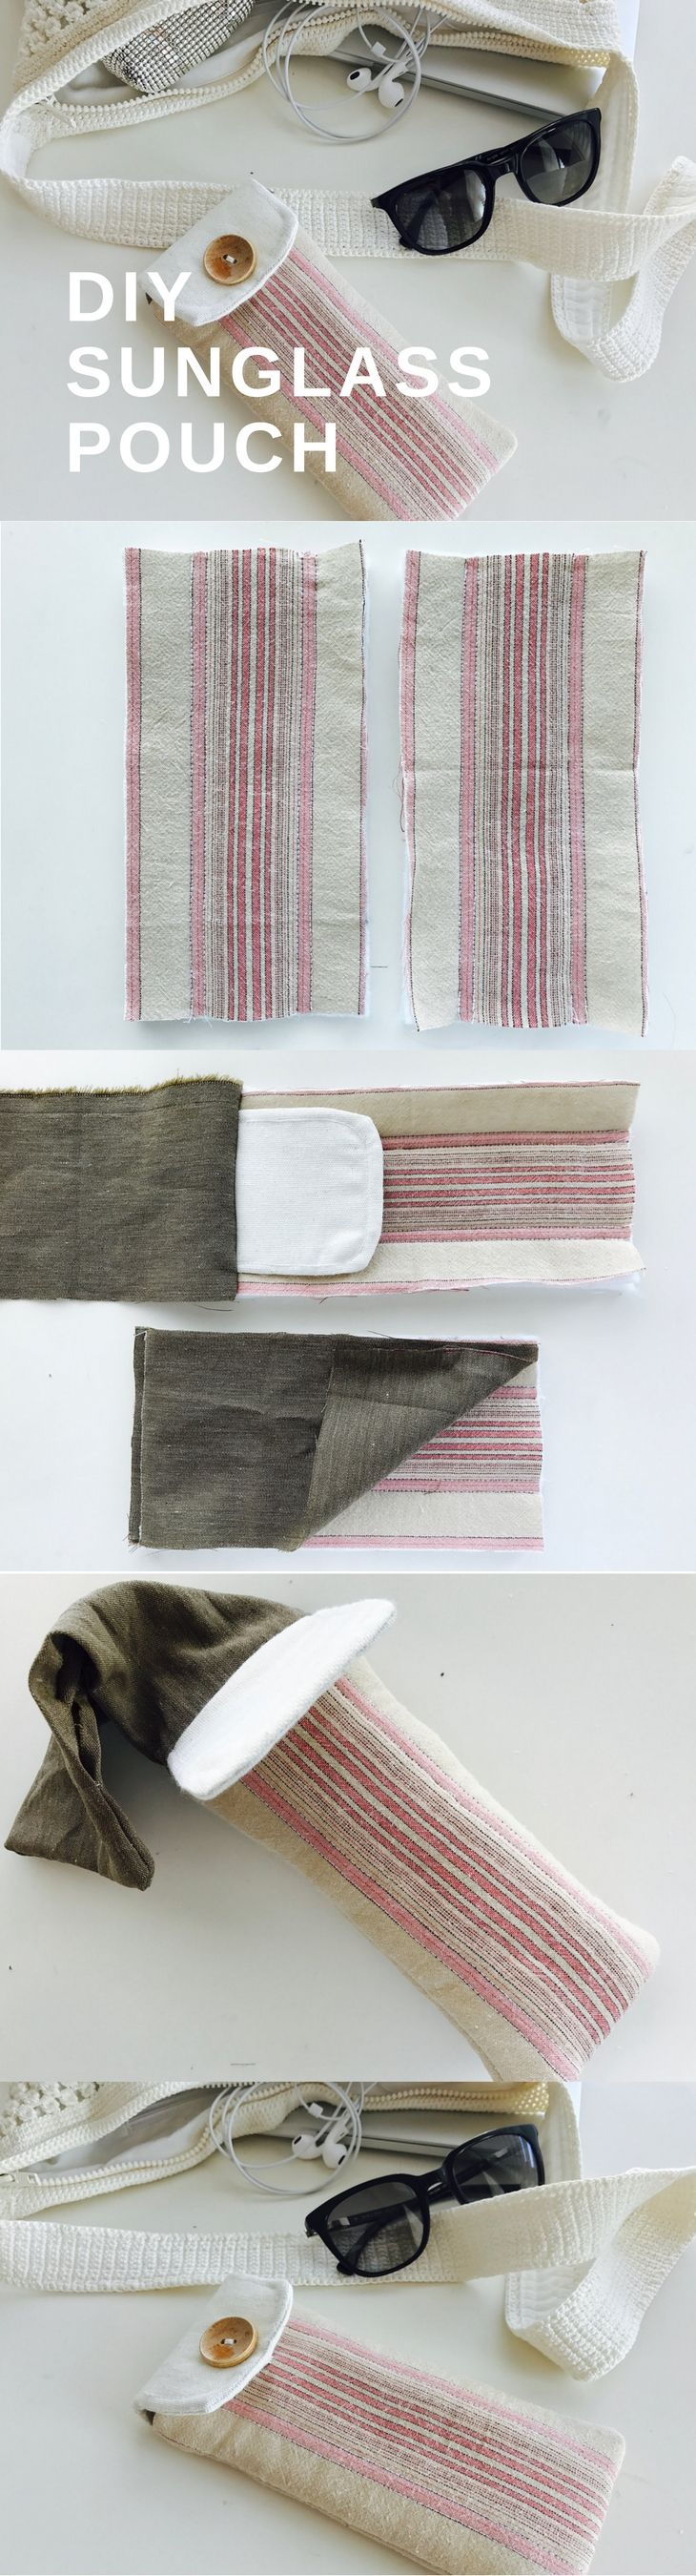 A sunglass pouch tutorial for the summer! The handy pouch takes up no space in your bag.